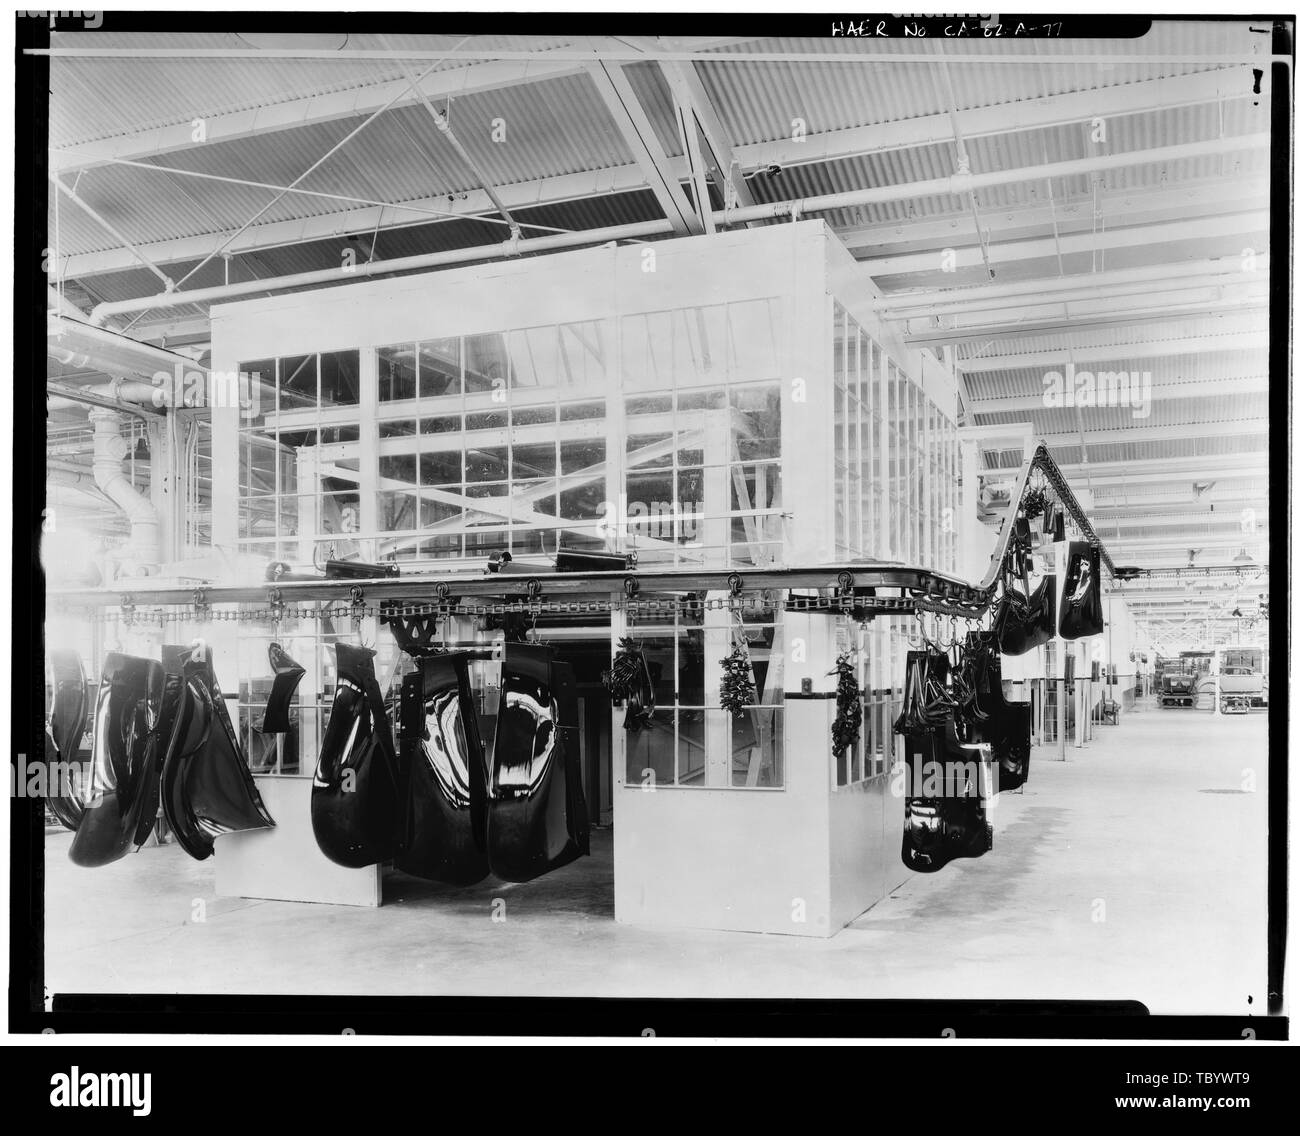 Neg. Nr. F65A, 13 Apr, 1930 INTERIORASSEMBLY Gebäude, das Entladen der Emaille-ofen Ford Motor Company Long Beach Montagewerk, Assembly Building, 700 Henry Ford Avenue, Long Beach, Los Angeles County, CA Stockbild